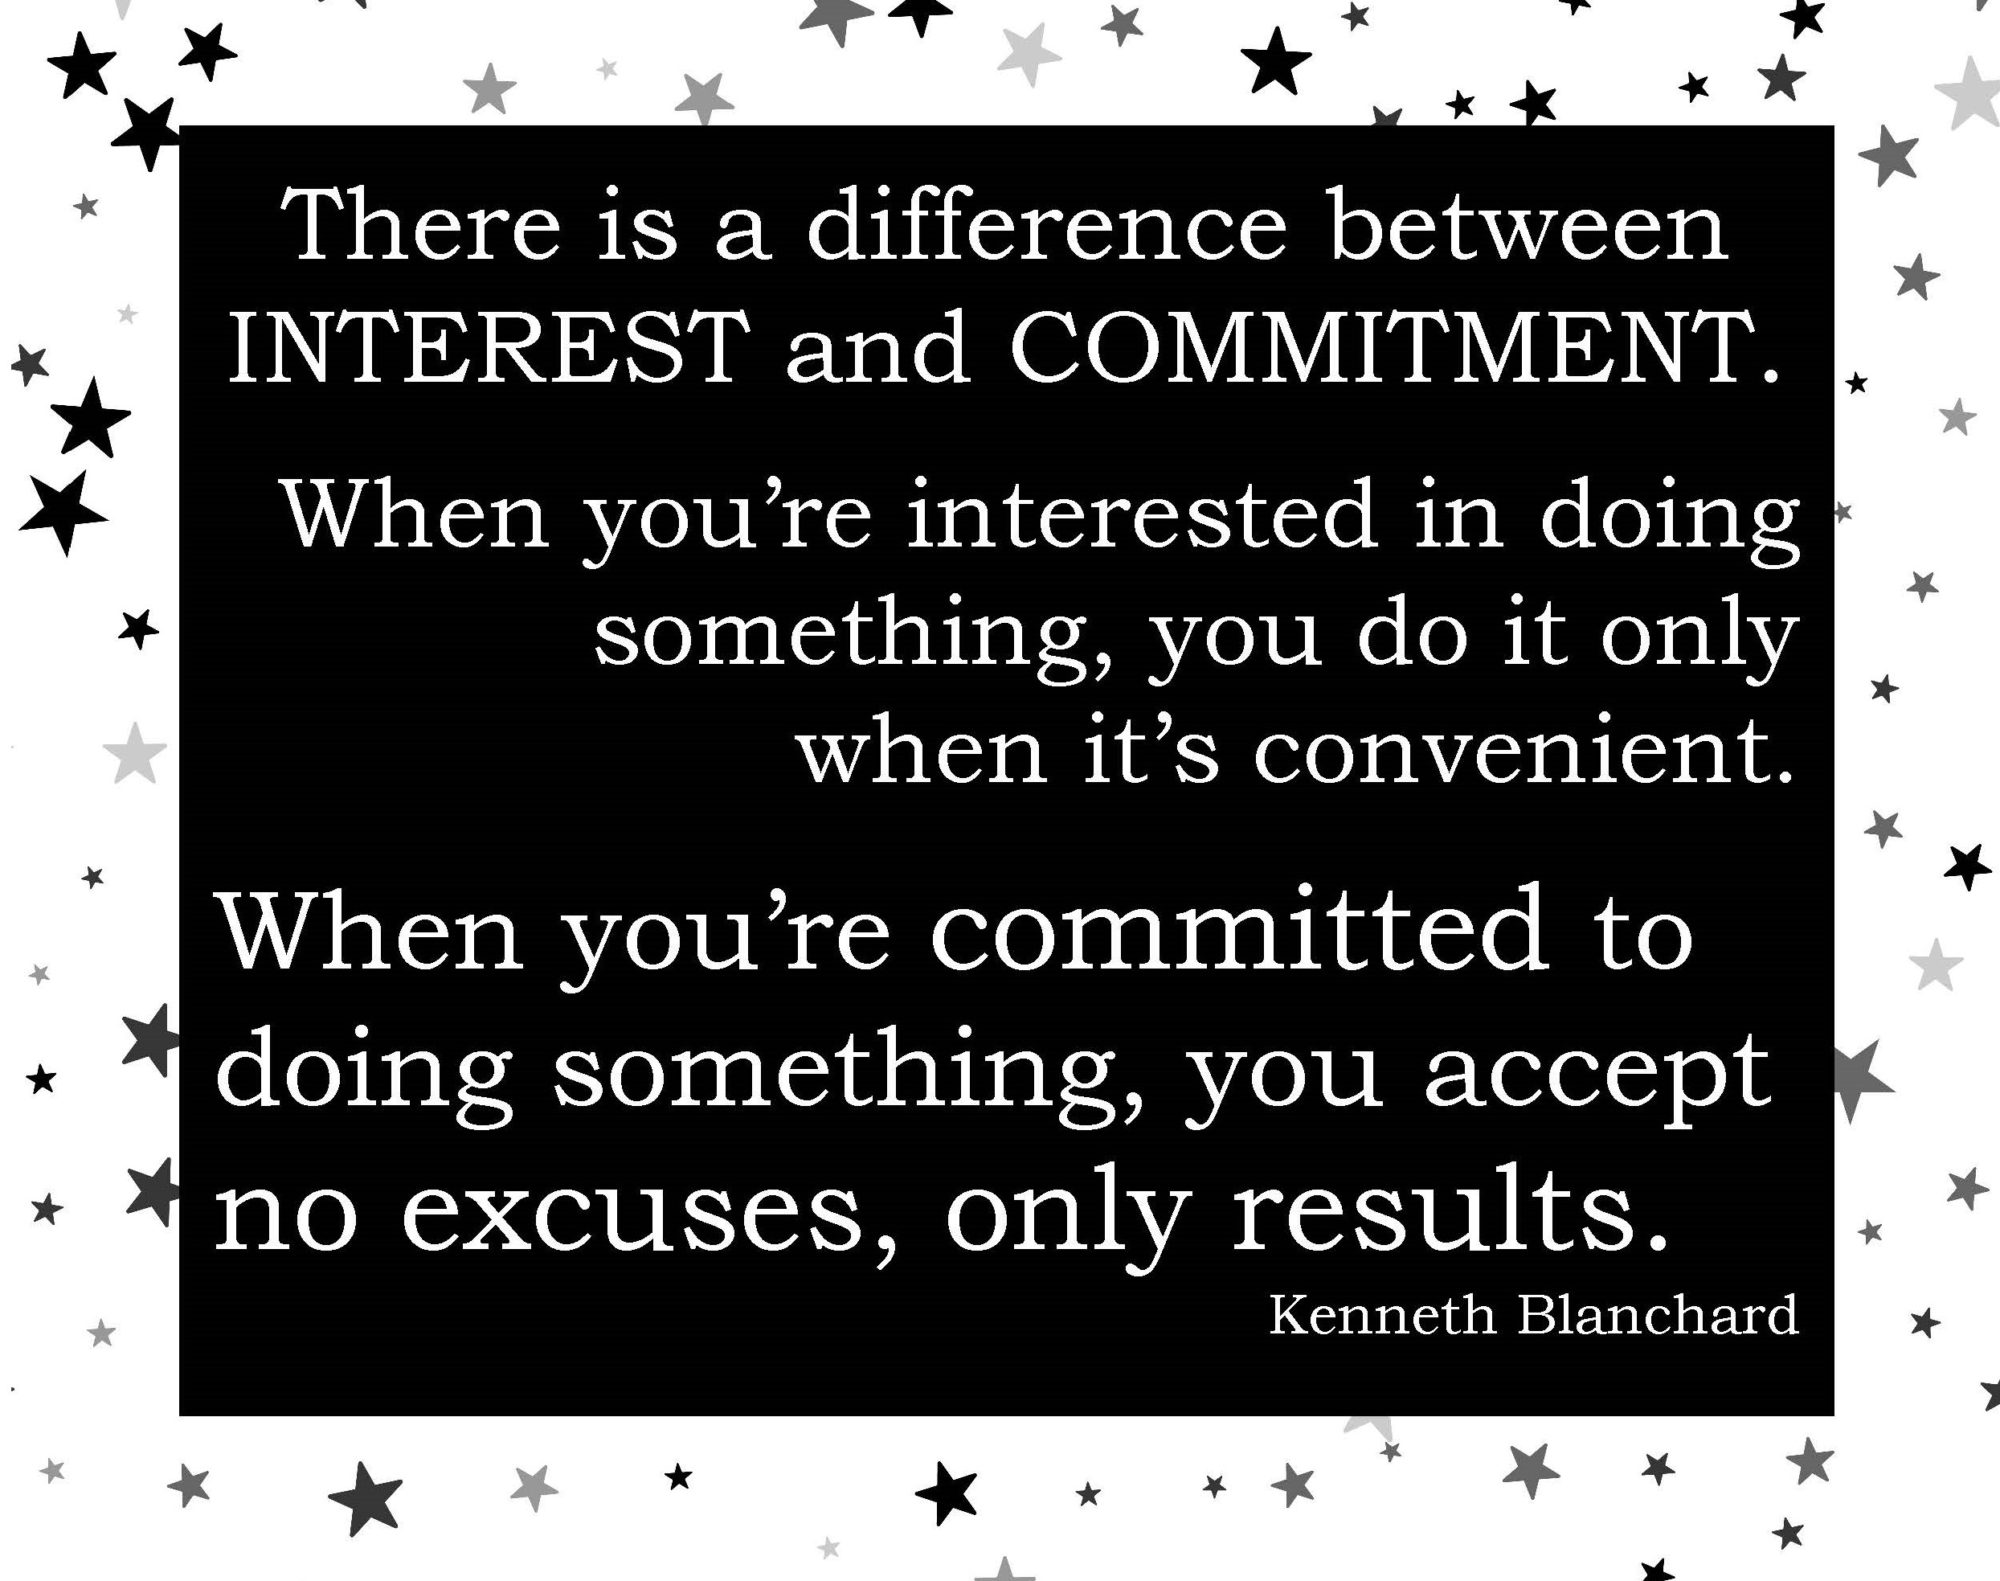 There is a difference between Interest and Commitment